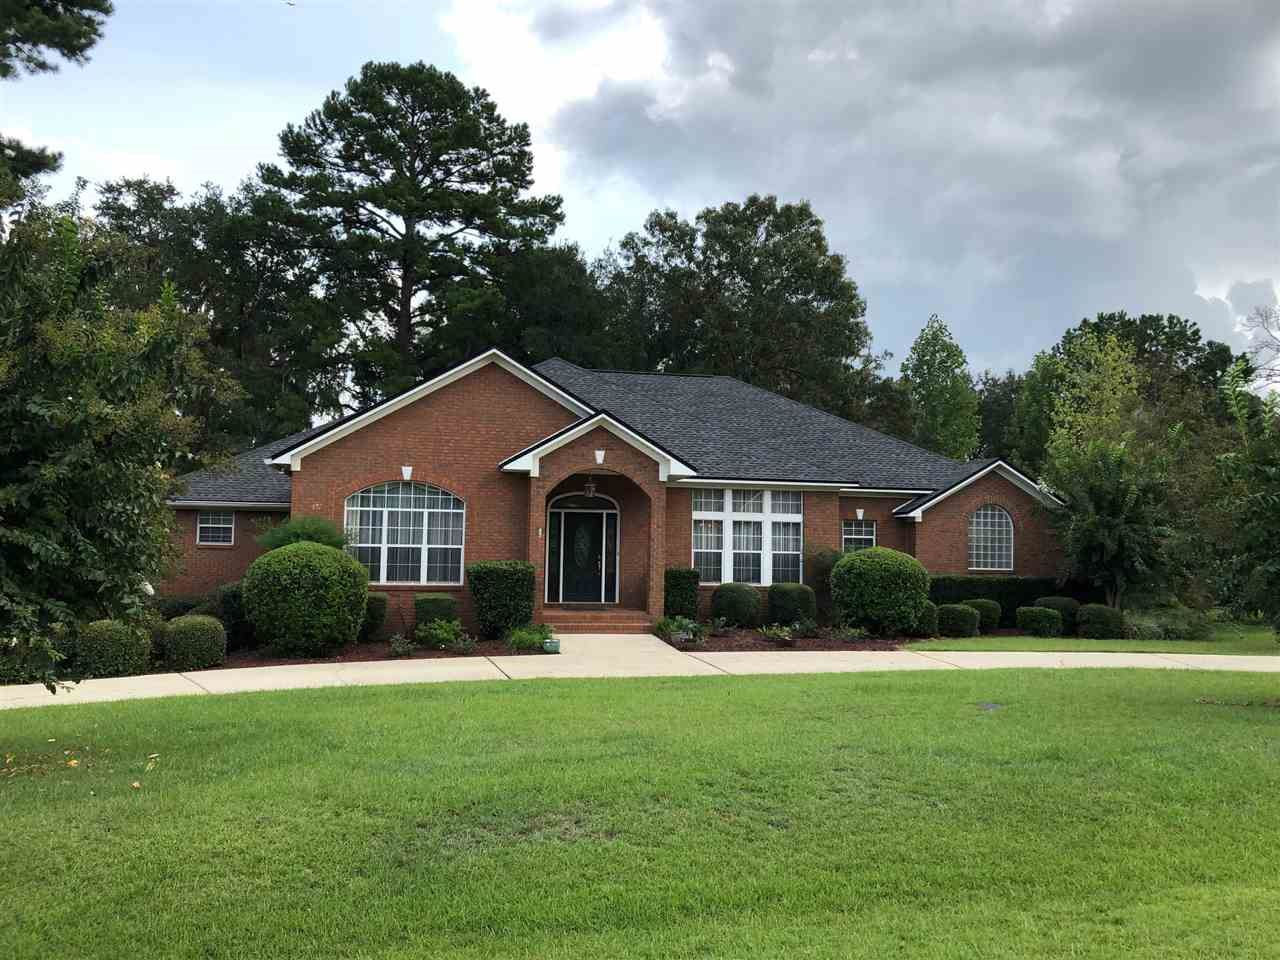 457 Meadow Ridge Drive, Tallahassee, FL 32312 - MLS#: 323304